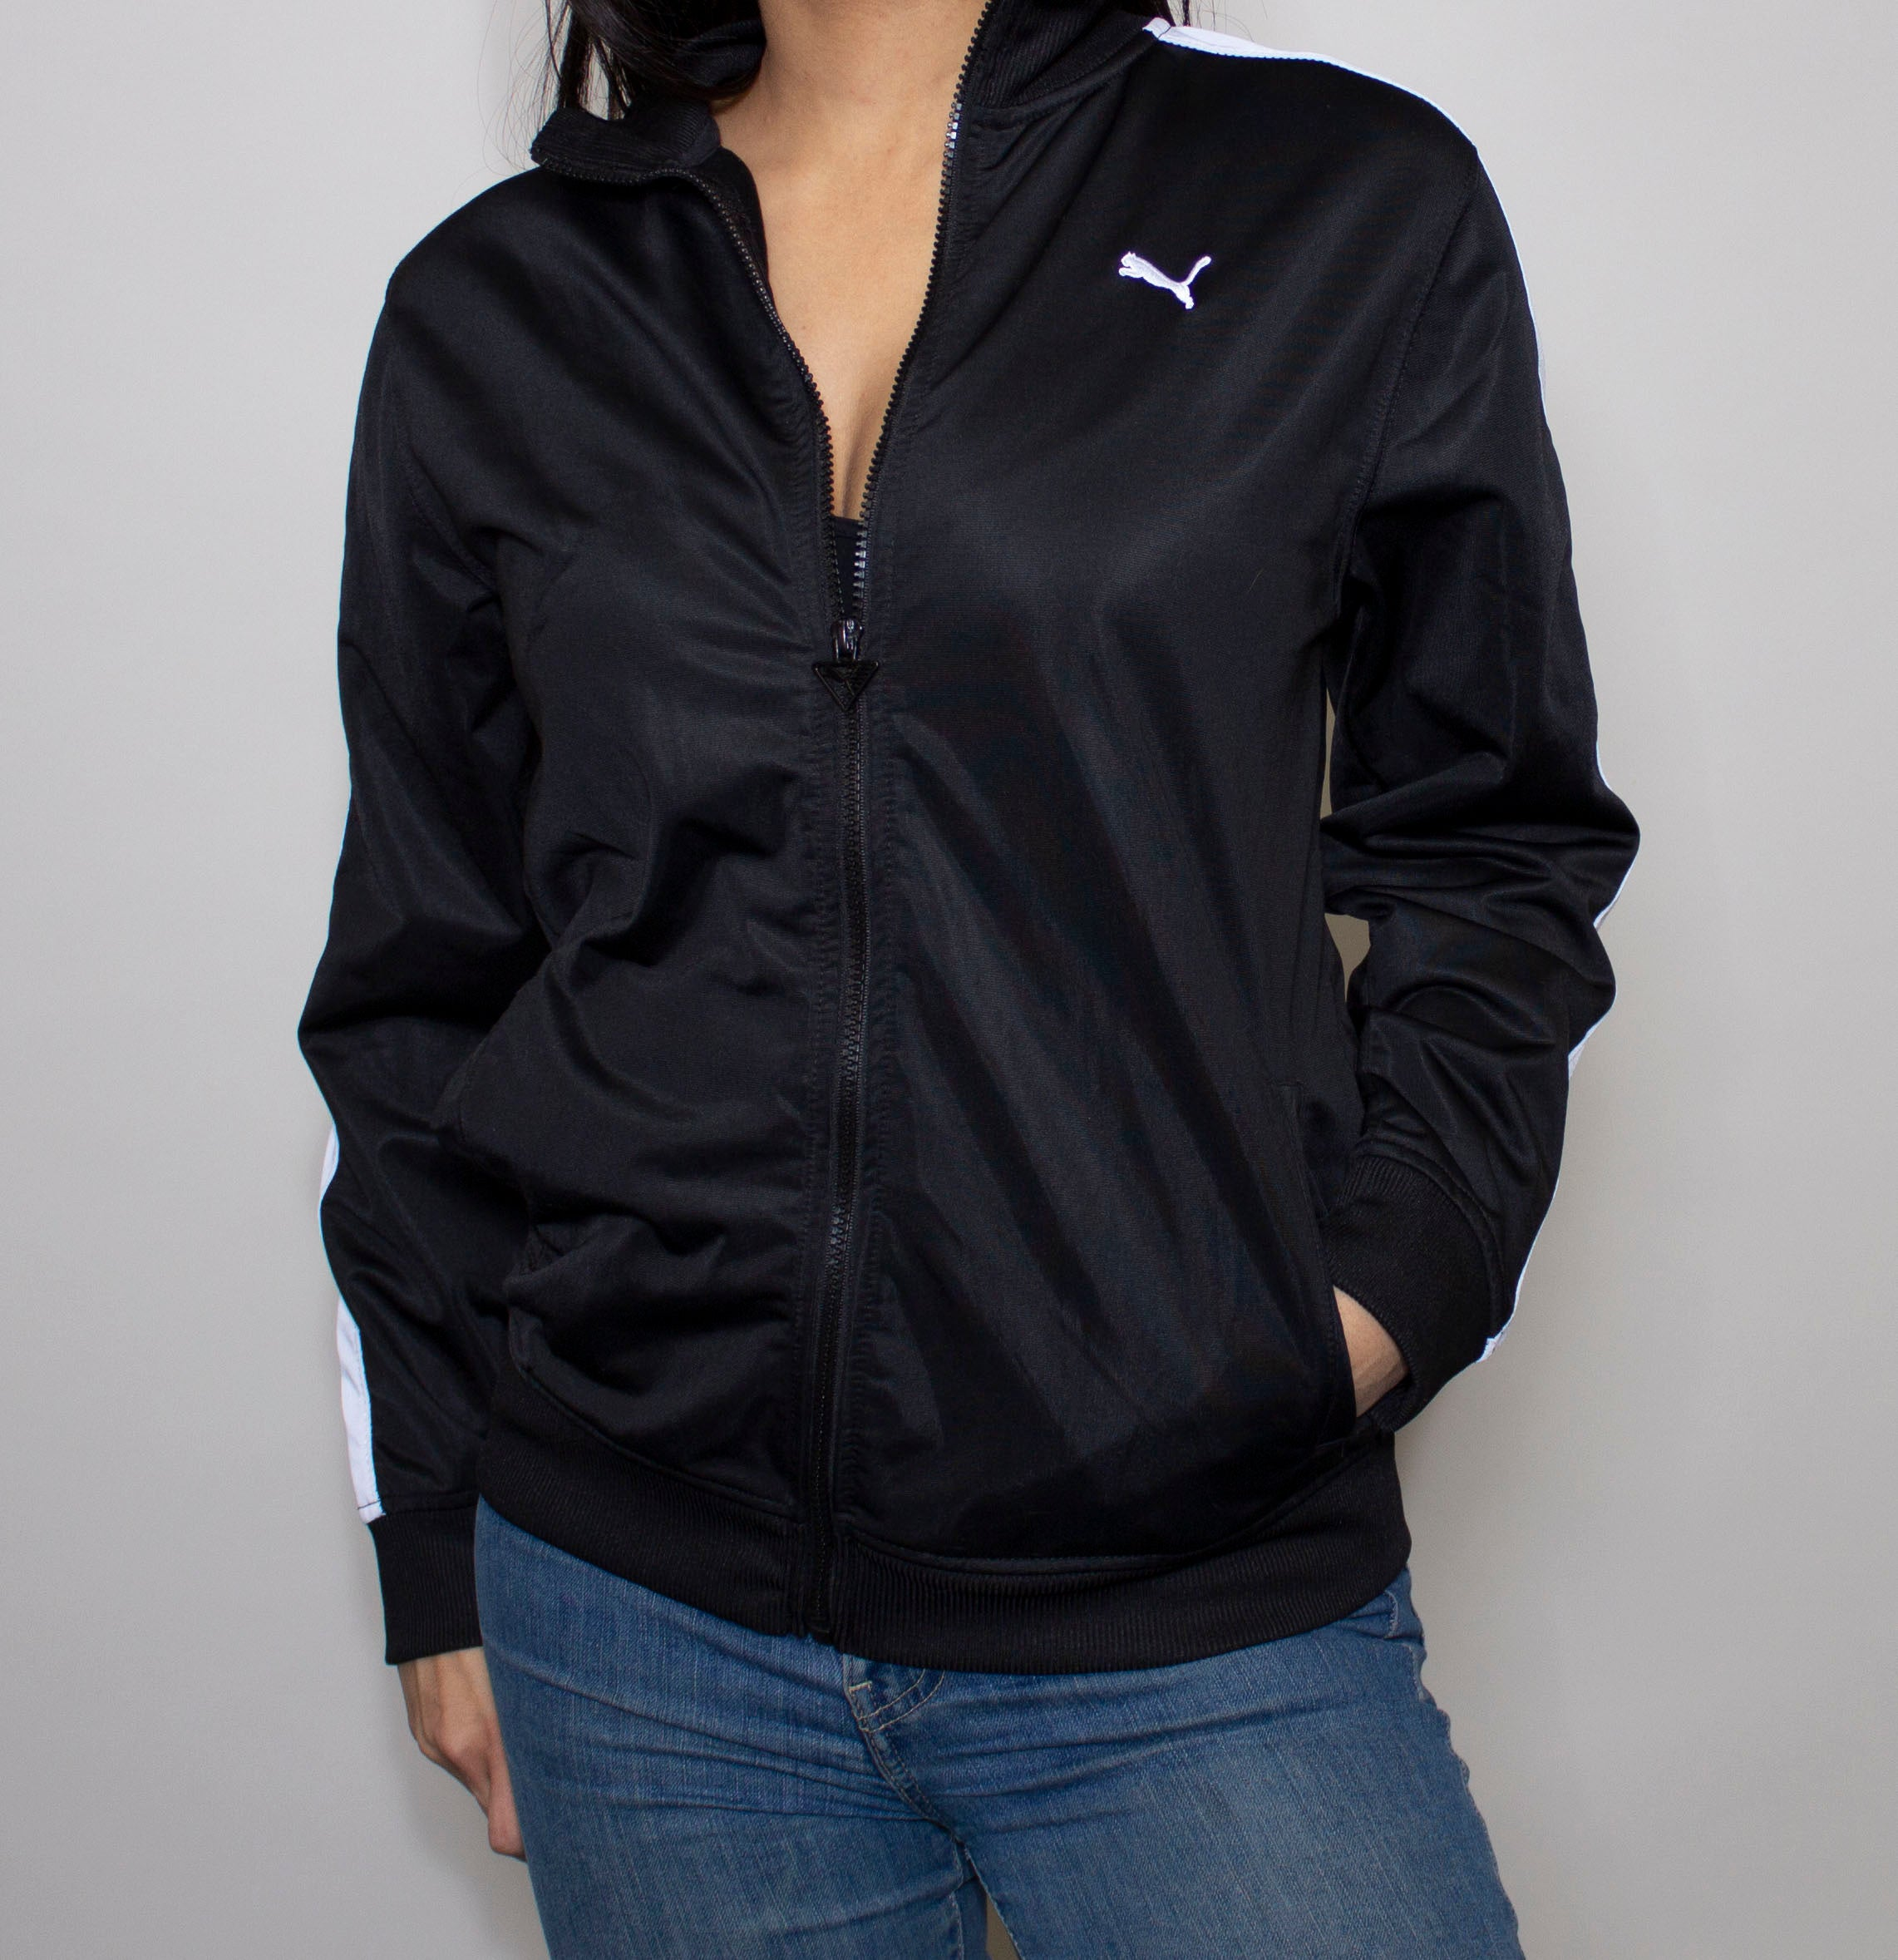 Puma ZipUp Sweater